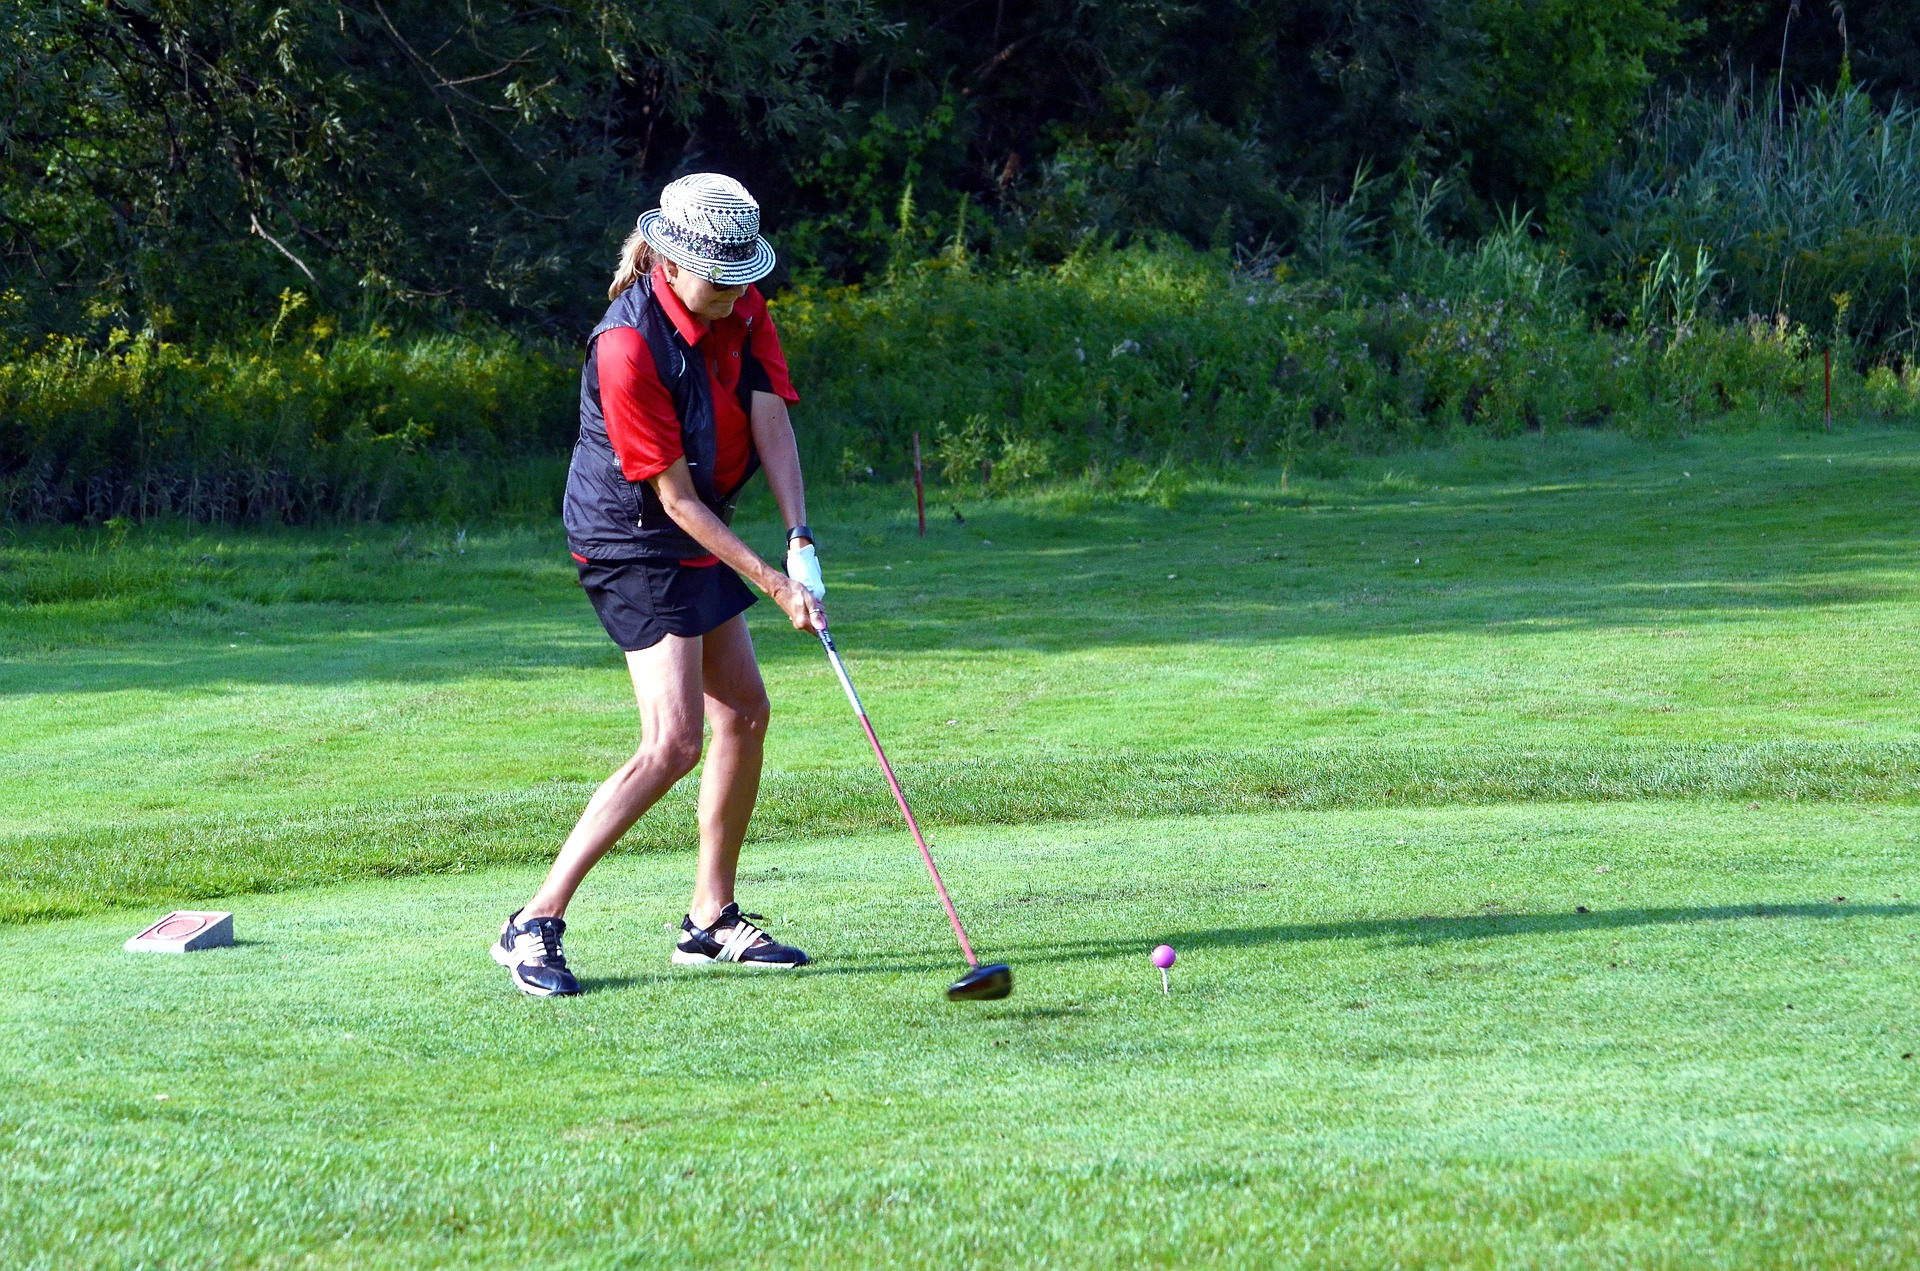 Improve the Power of Your Swing - 6 Exercises for Women Golfers